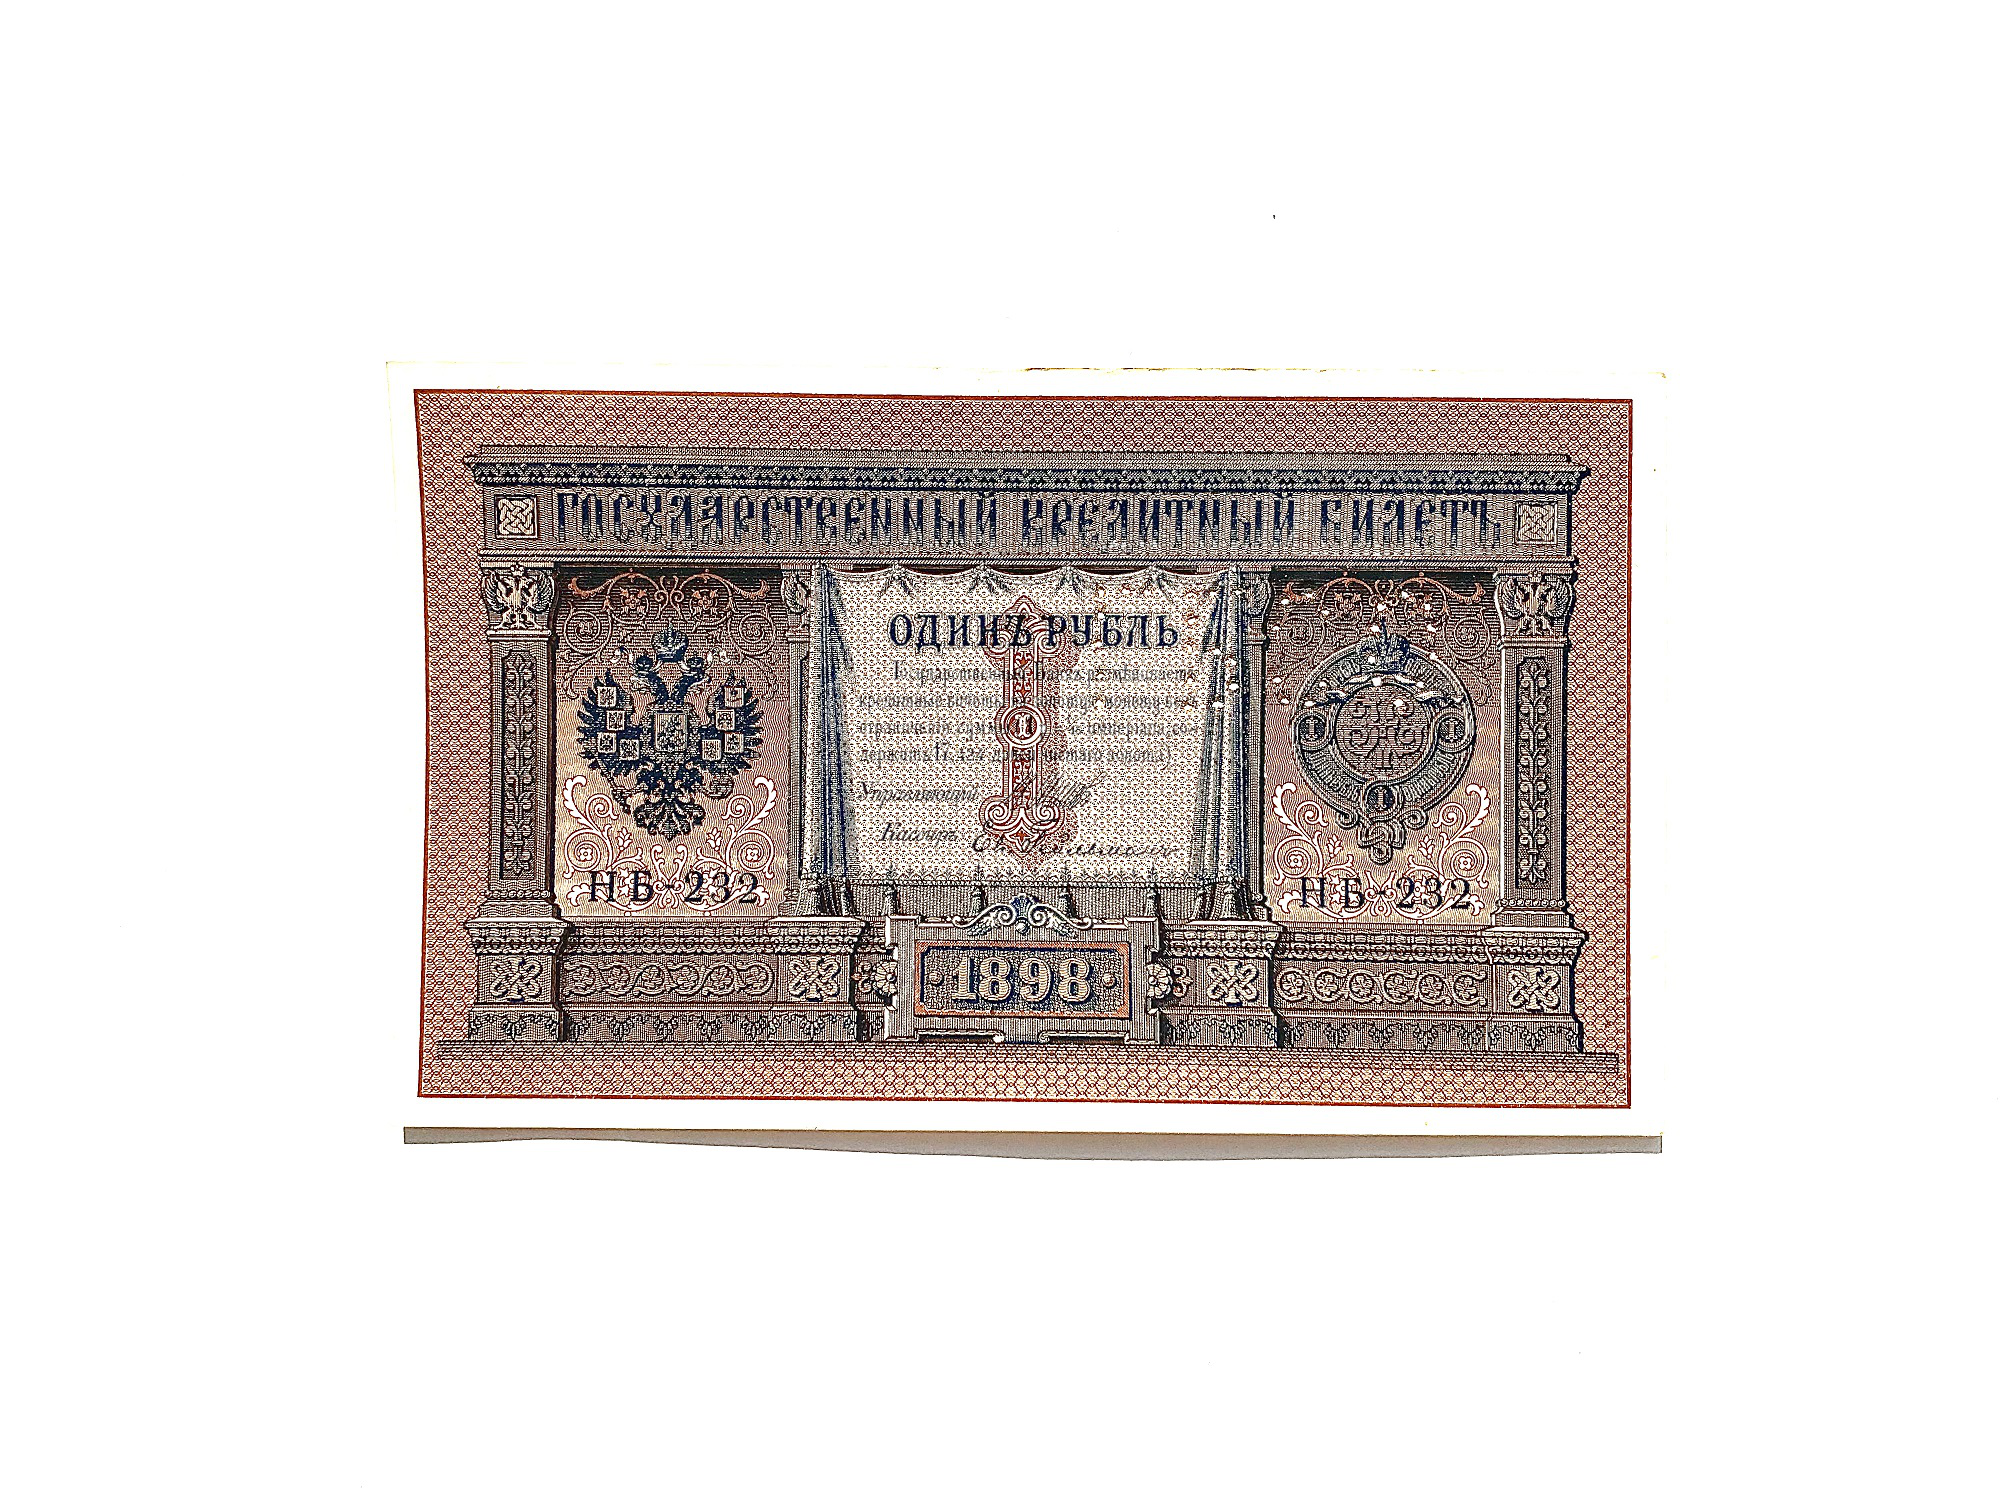 1 Ruble banknote, Russia, Northern Region, 1898 | Hobby Keeper Articles